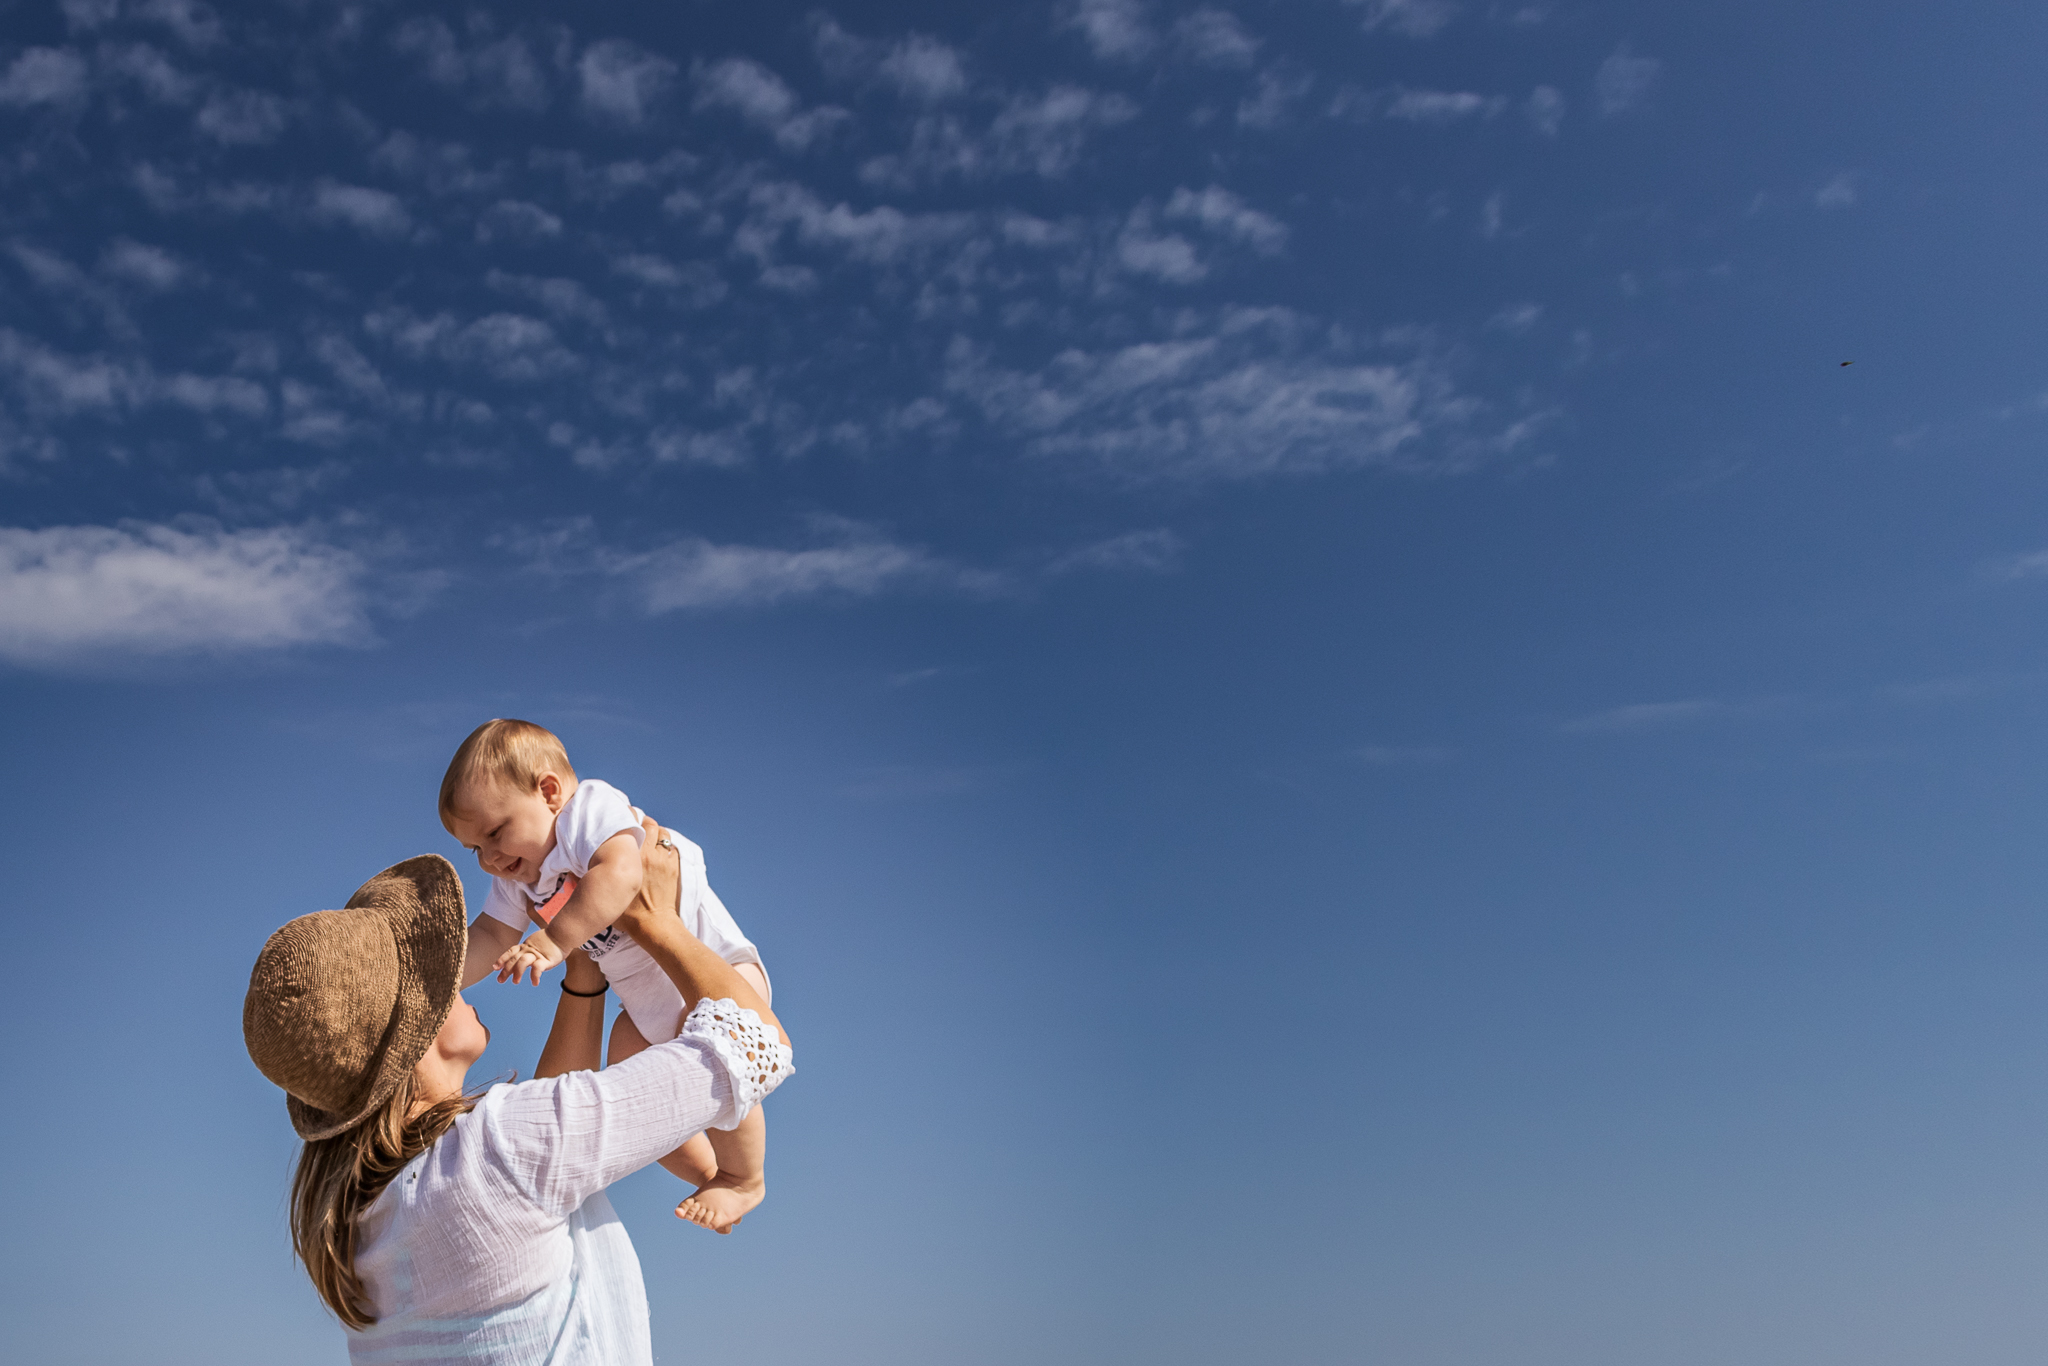 New Jersey Beach Photographer, Mom Lifting Son in Air with Blue Sky